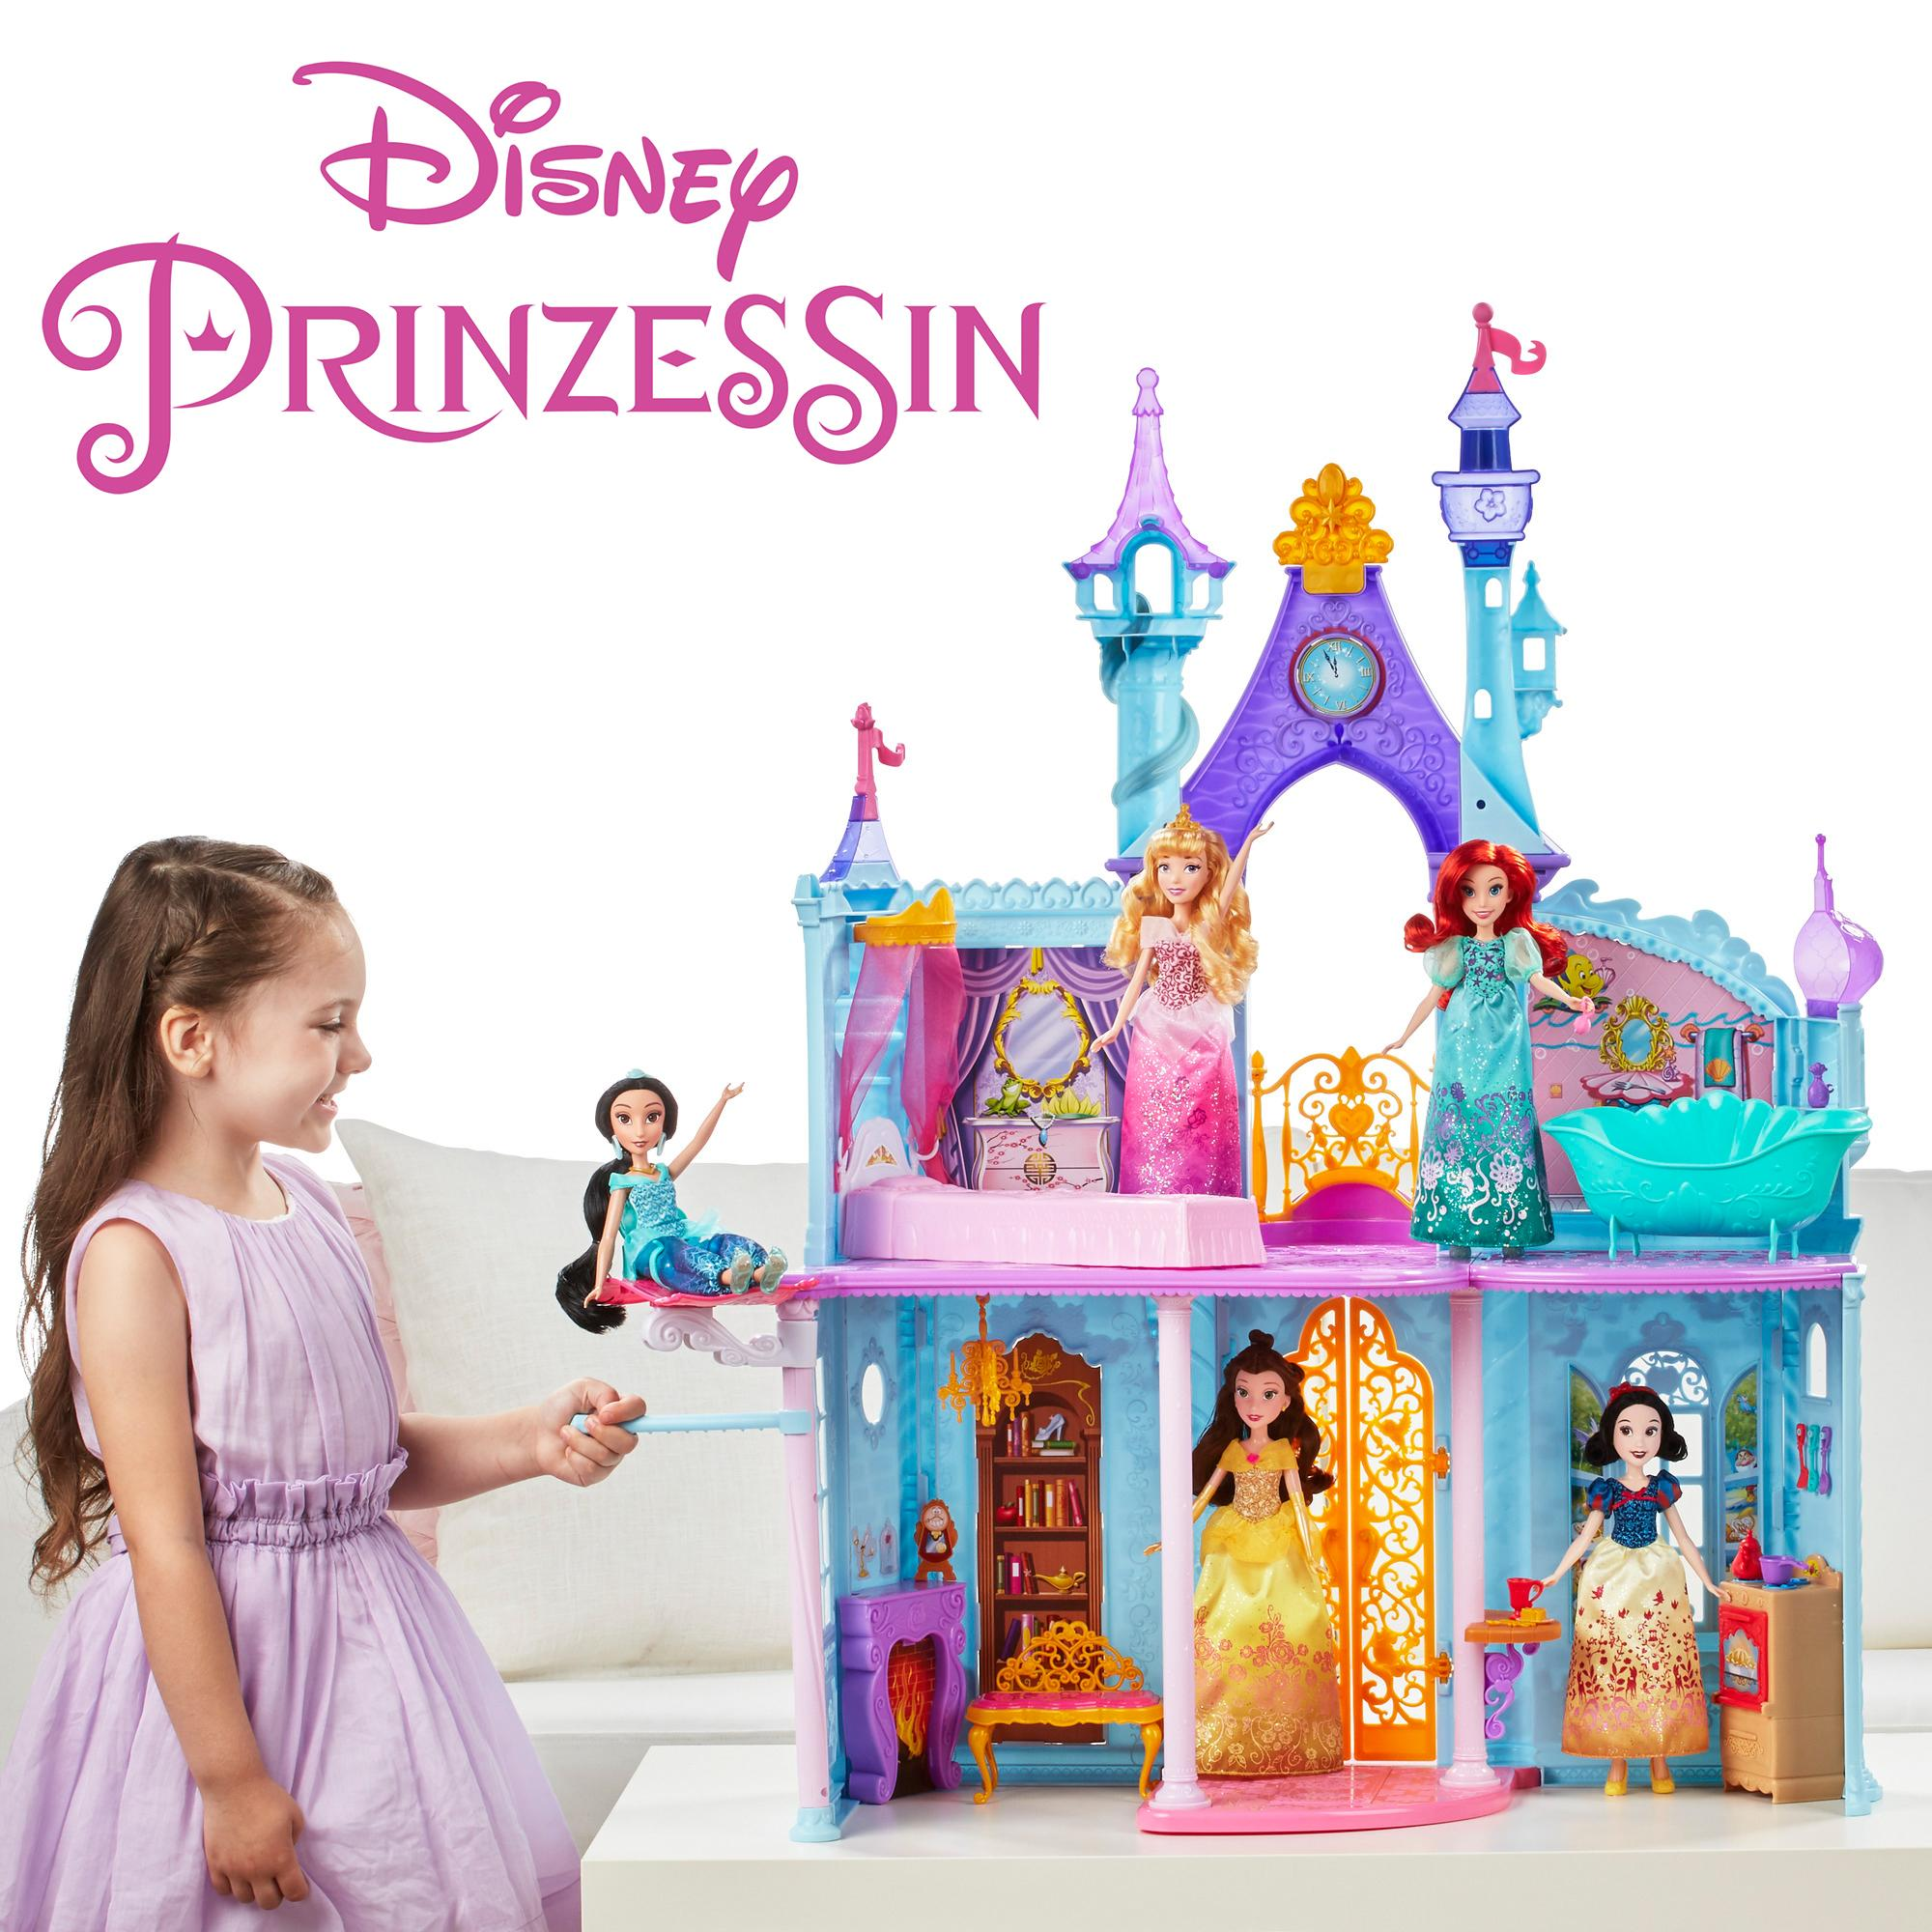 hasbro disney prinzessin b8311eu4 bezauberndes m rchenschloss spielset spielzeug. Black Bedroom Furniture Sets. Home Design Ideas